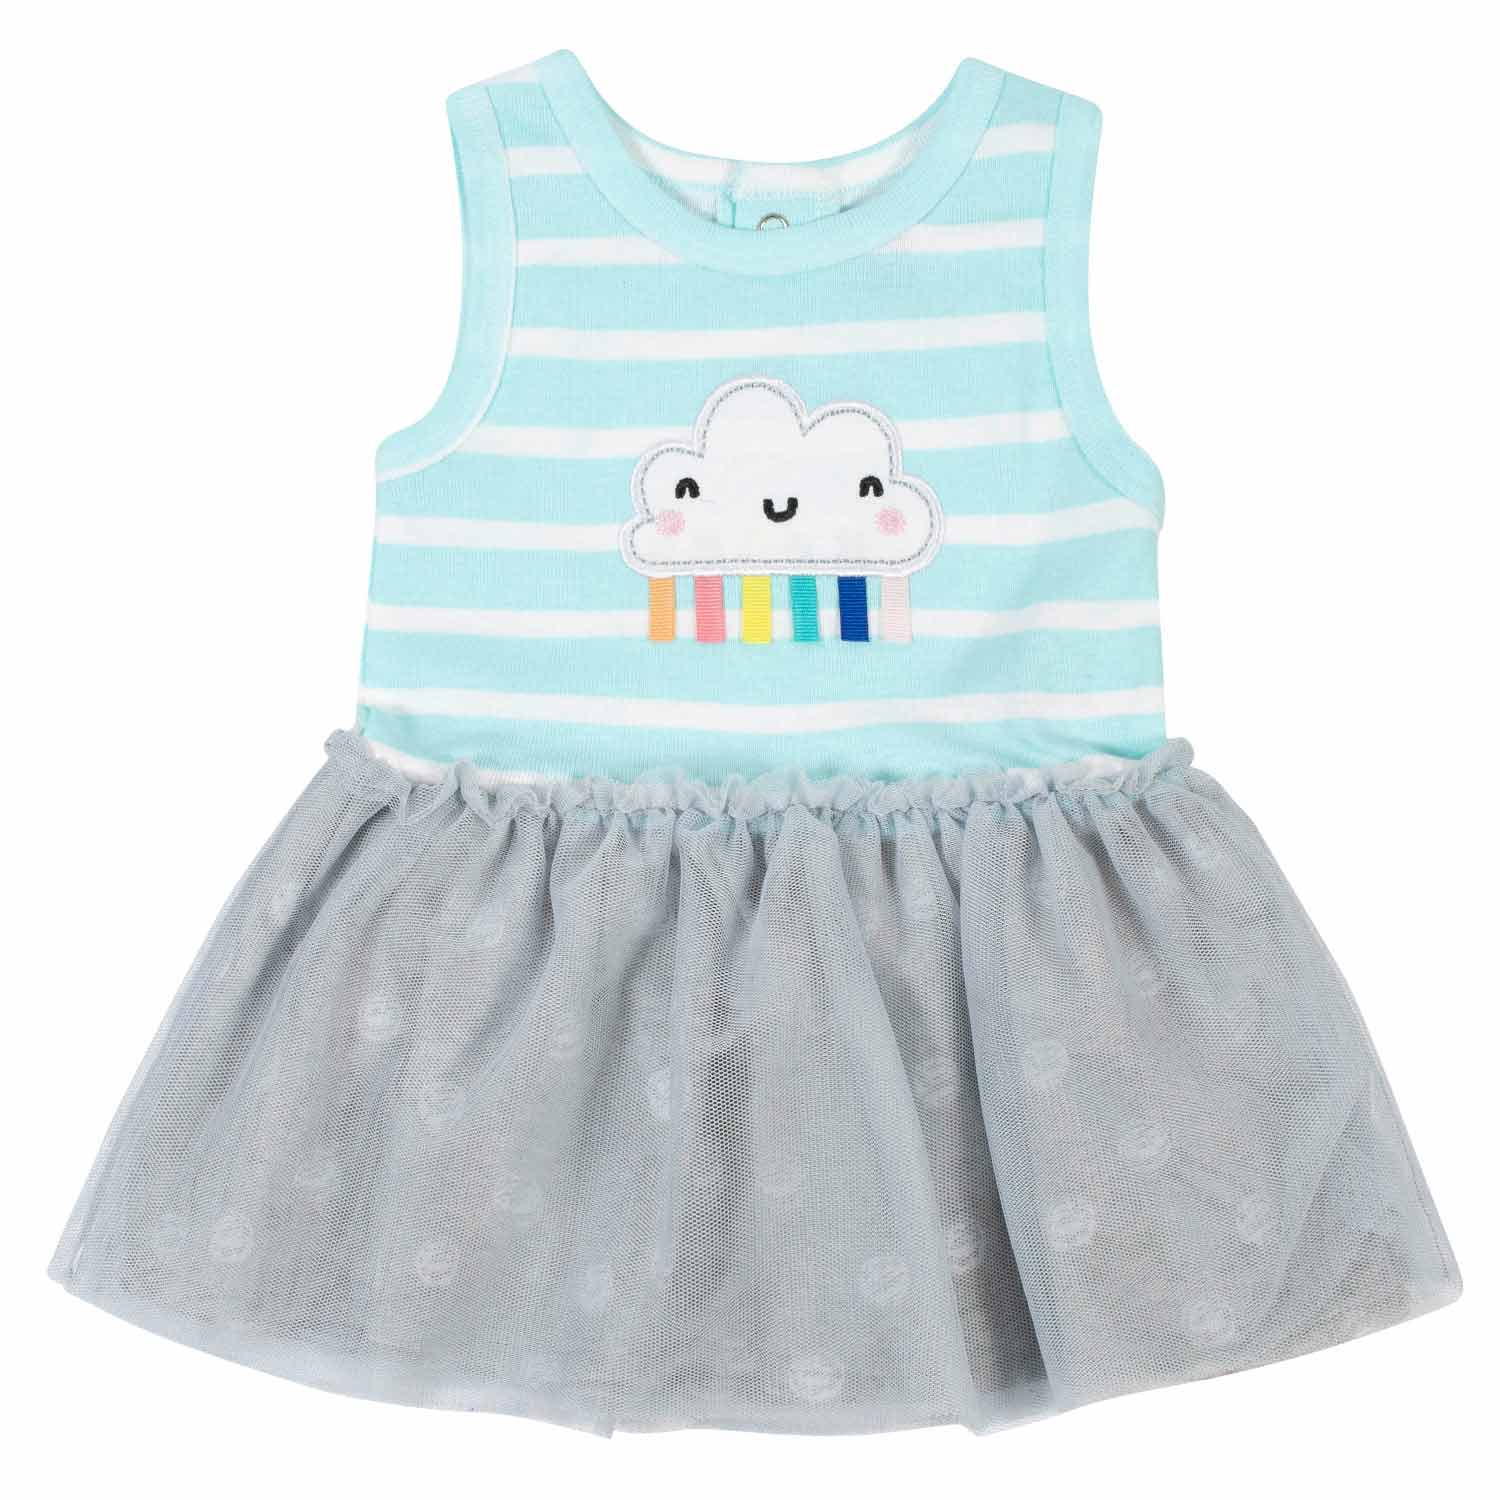 2-Piece Baby Girls Clouds Tulle Dress and Diaper Cover